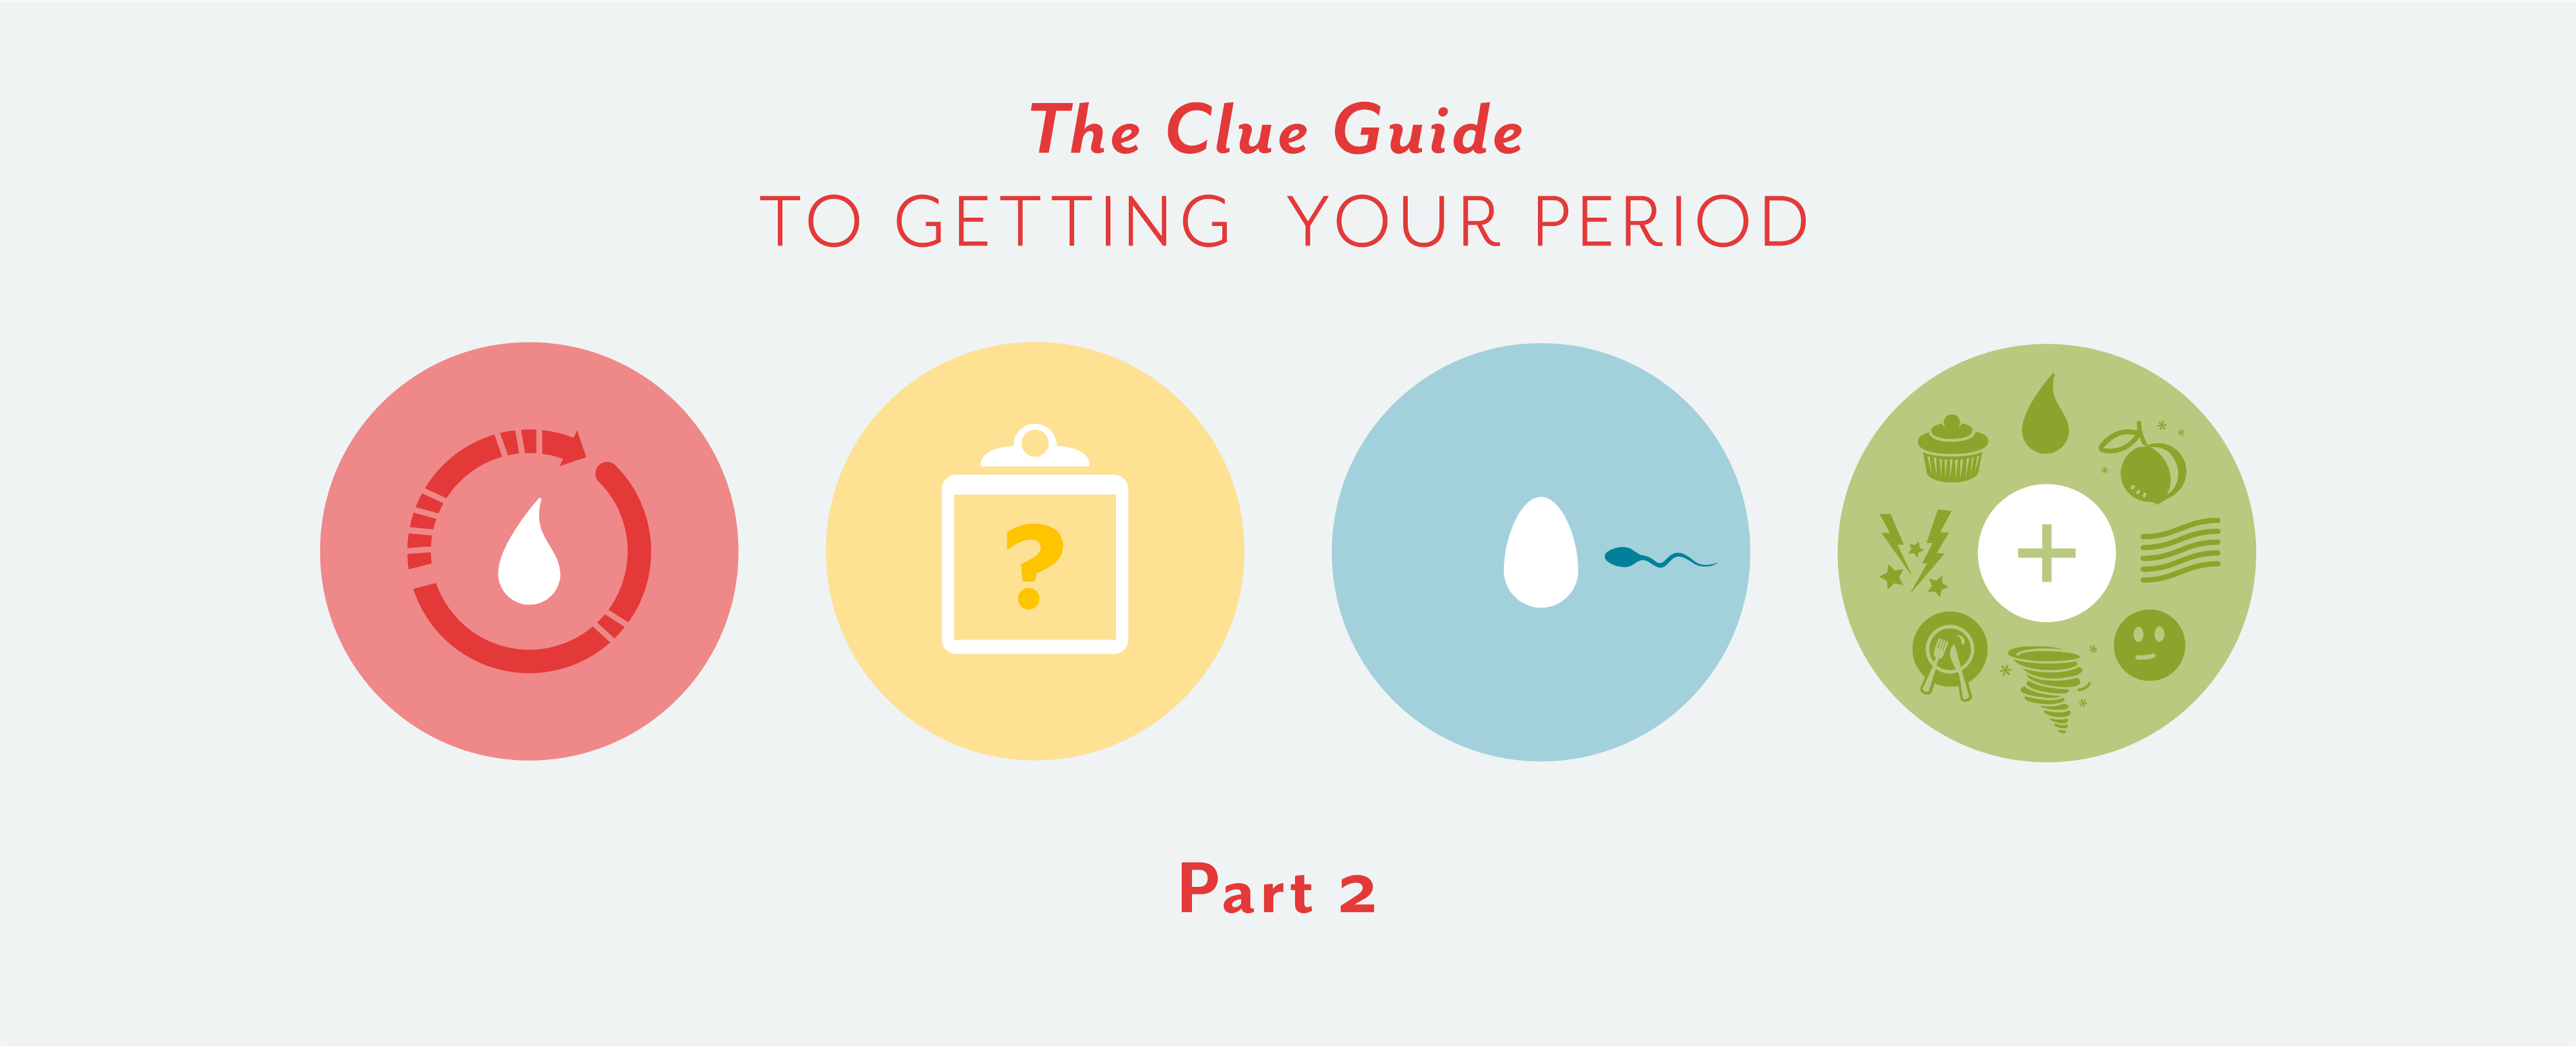 Part 2: The Clue guide to getting your period - Clued In